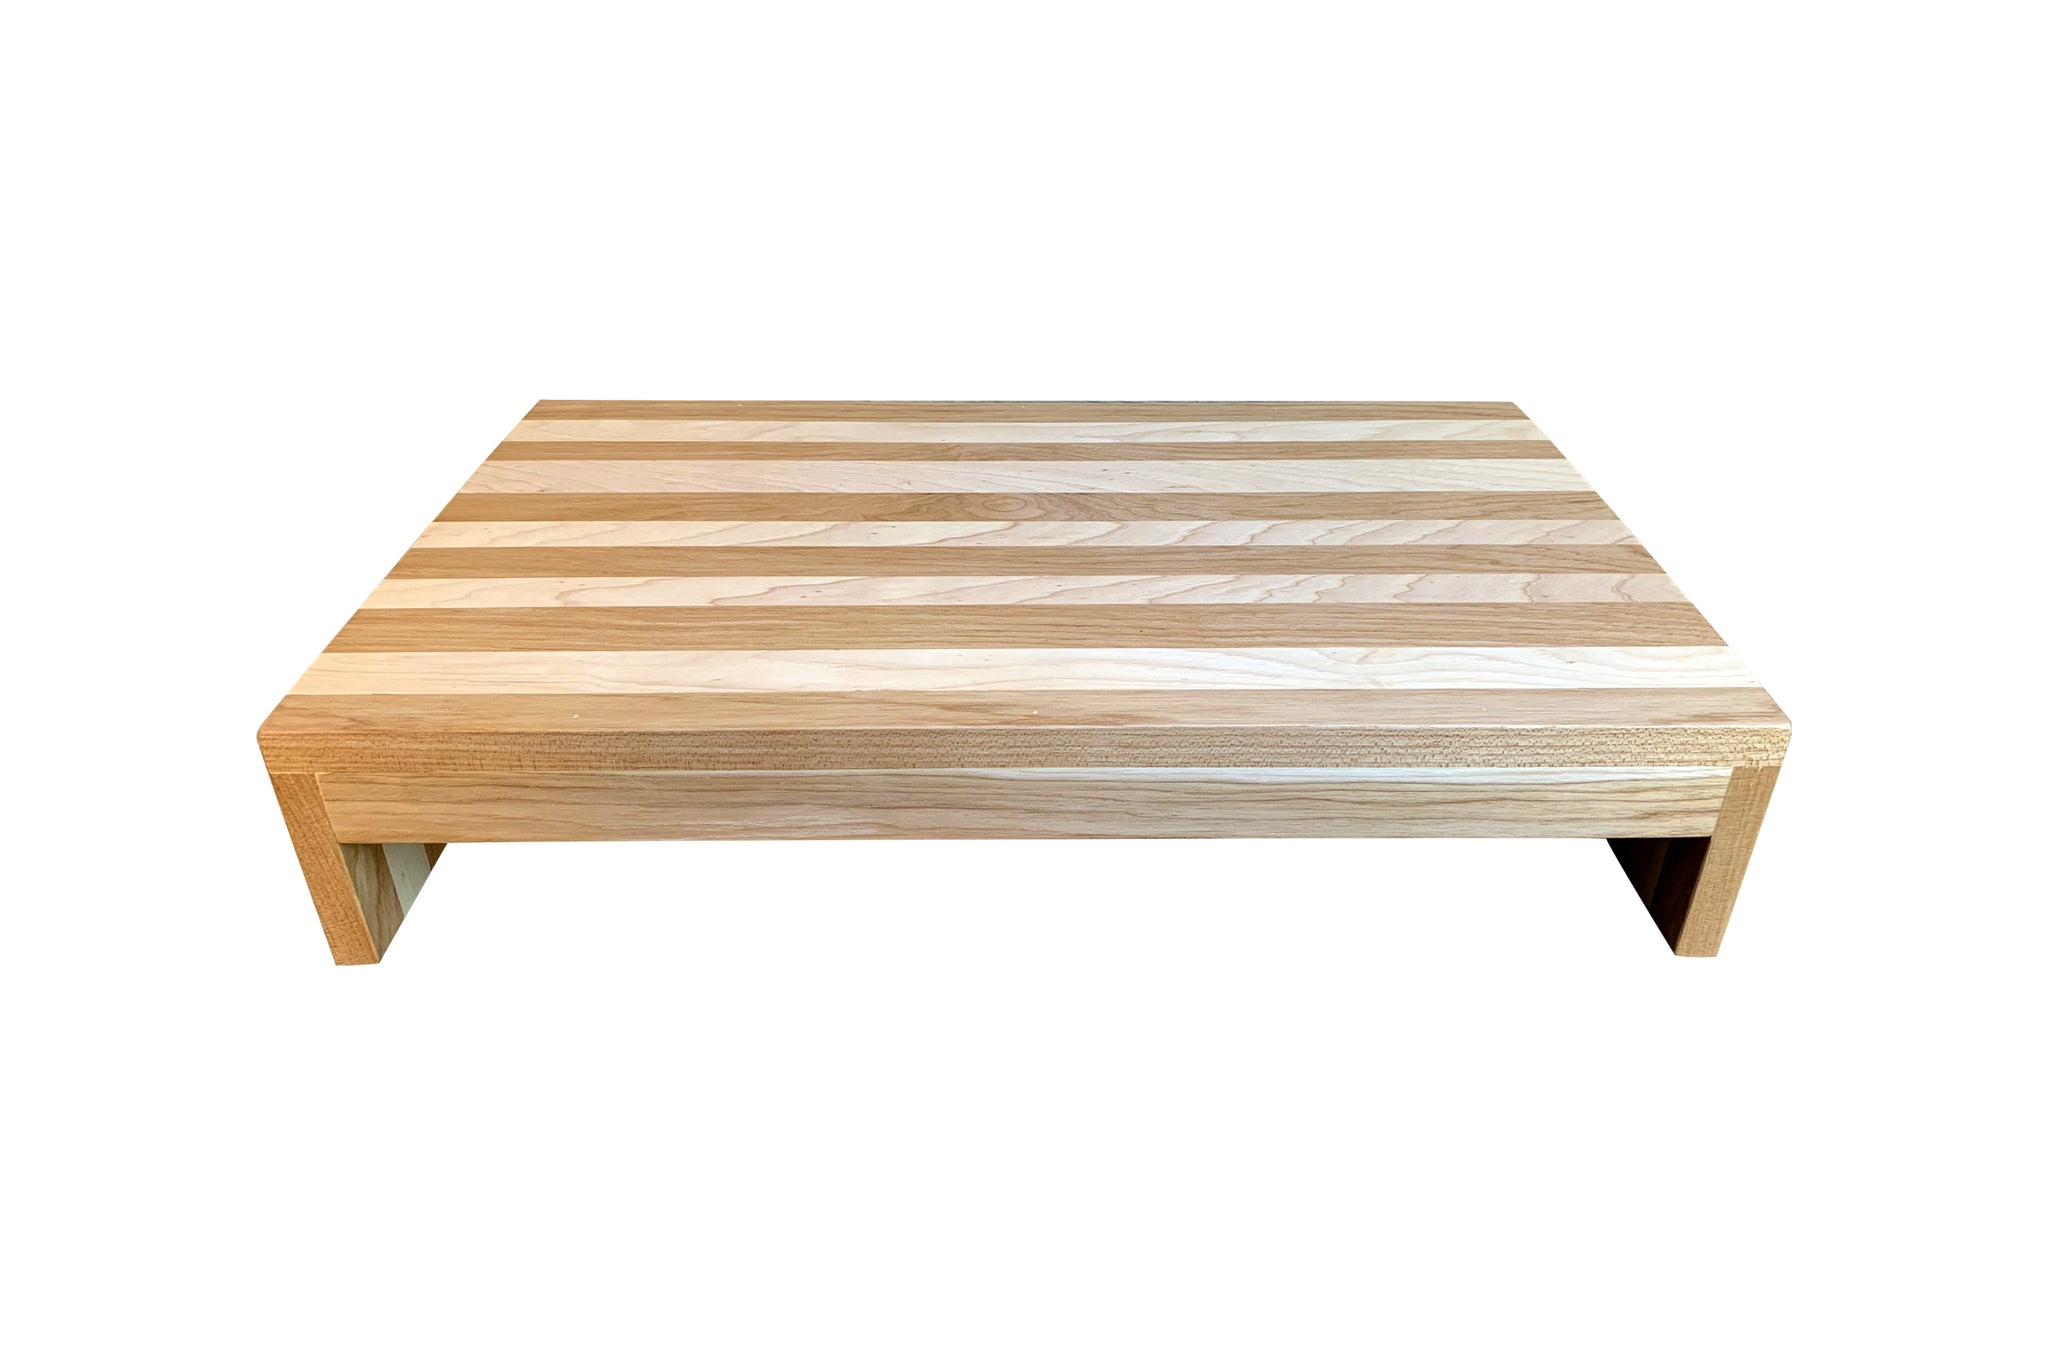 Surprising Modern Wood Step Stool Large By Cw Furniture Footstool Gmtry Best Dining Table And Chair Ideas Images Gmtryco